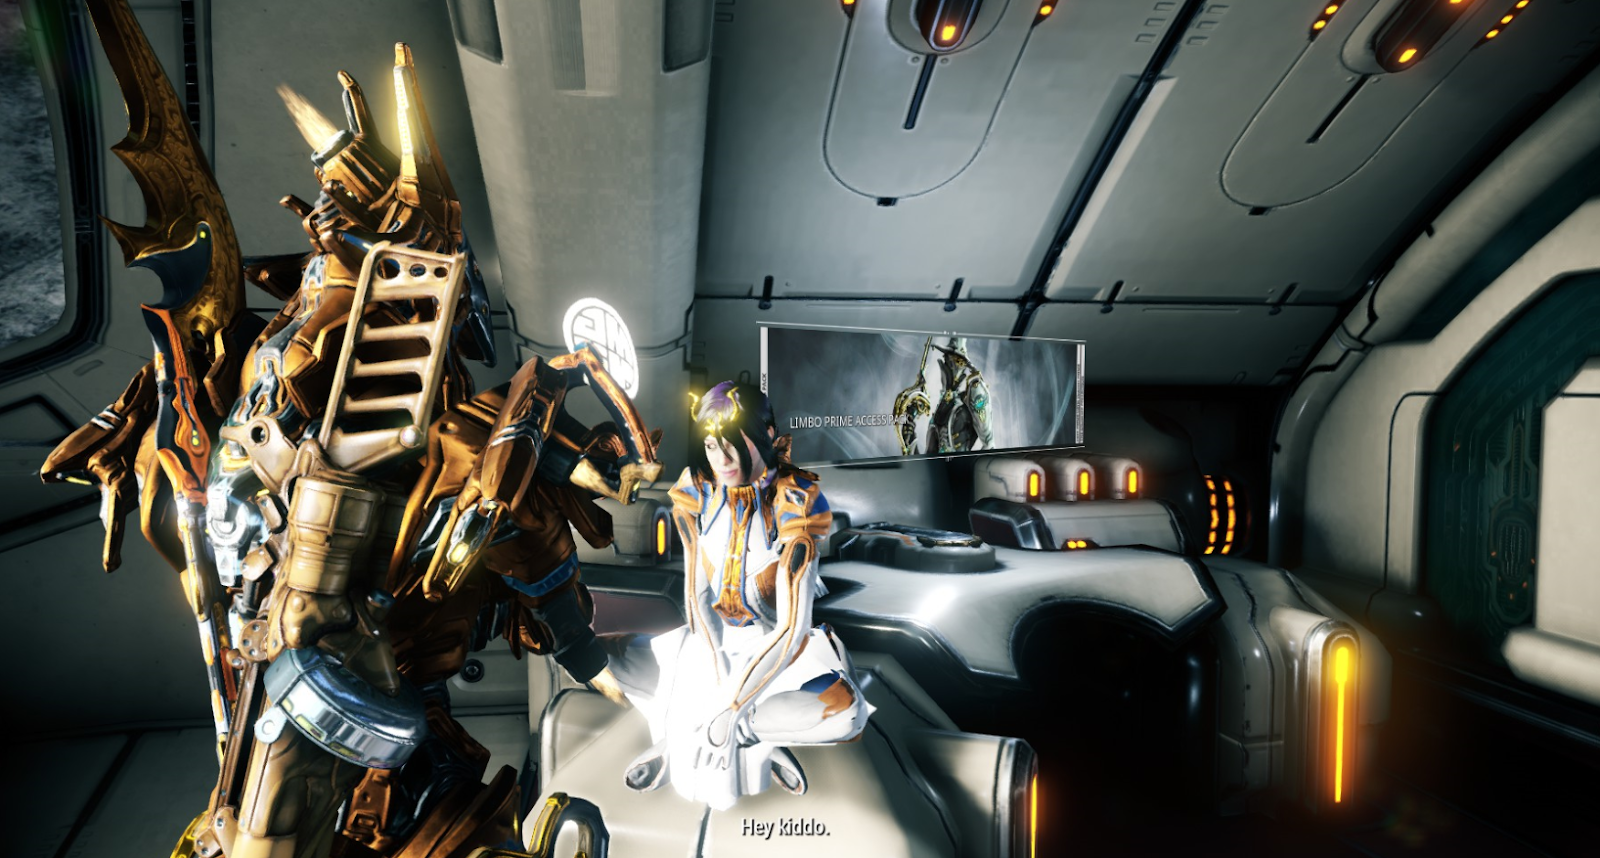 warframe review 2020 grind tenno character